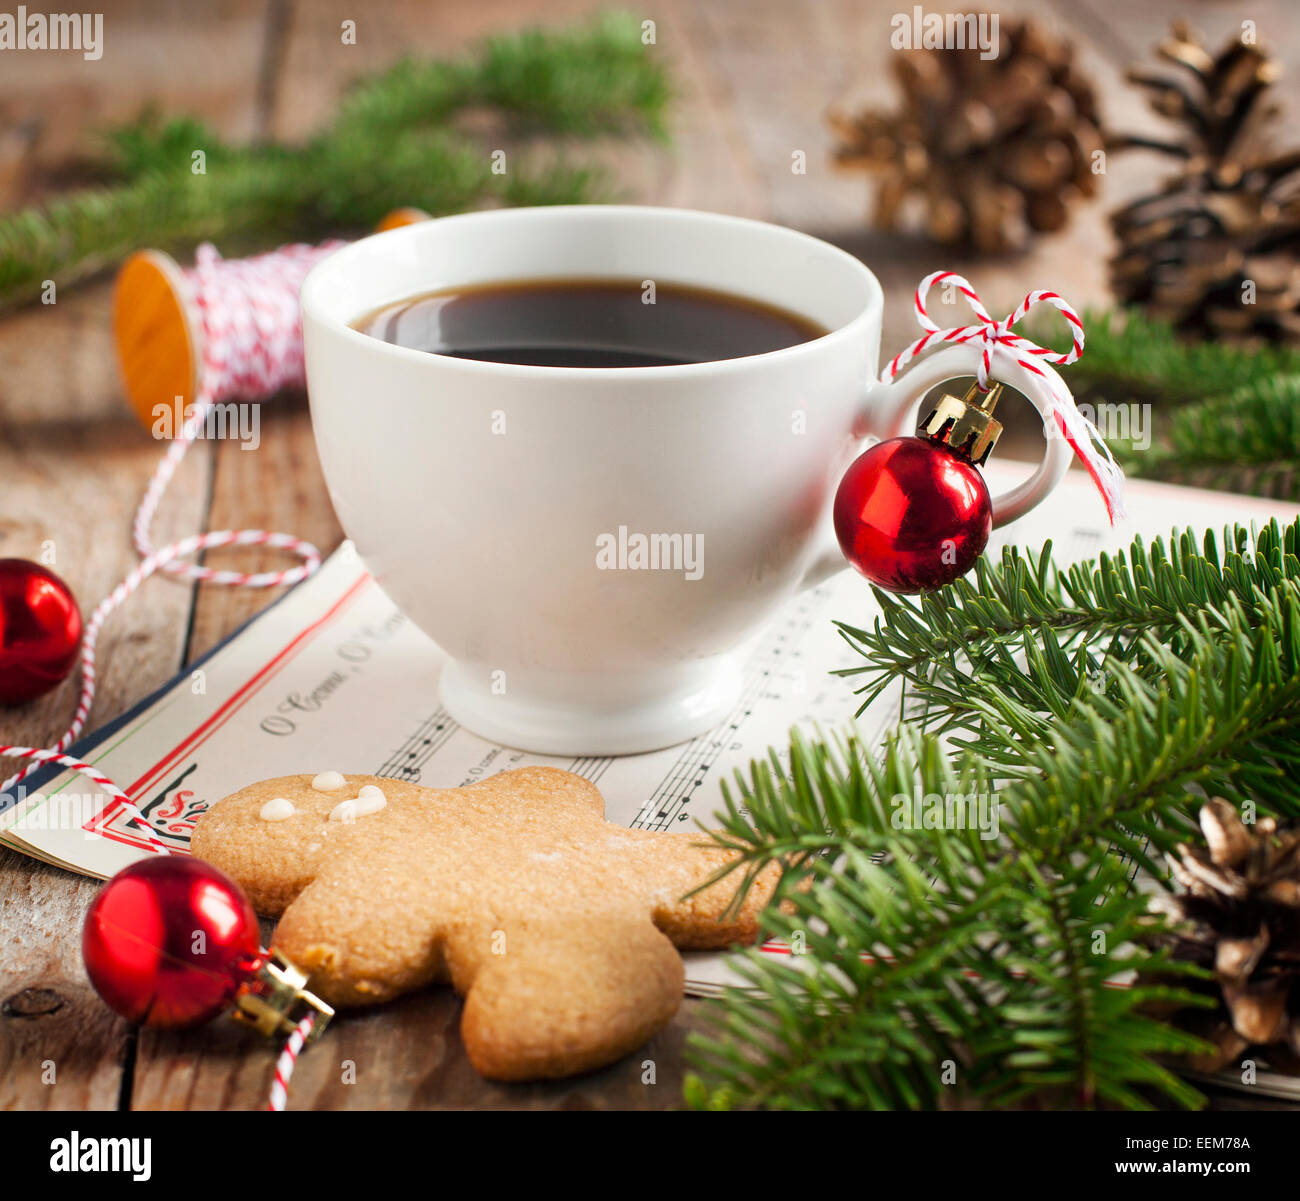 Cup of coffee and gingerbread cookie with christmas decorations - Stock Image